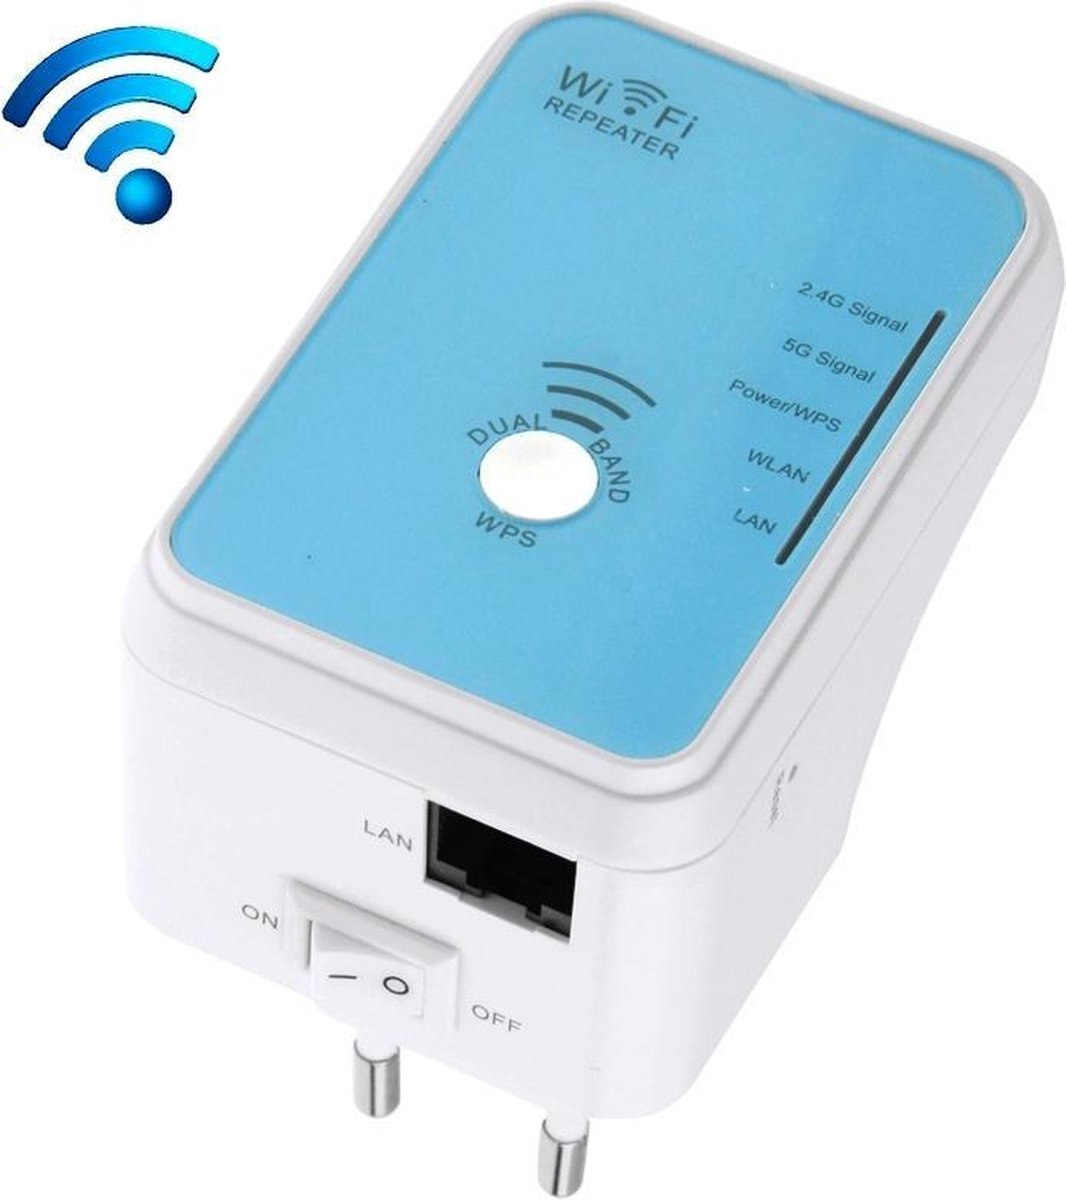 WS-WN568N5 Concurrent Dual Band Wifi Repeater Maximum Speed up to 5GHz 150Mbps / 2.4GHz 150Mbps Signal Boosters, Sign Random Delivery